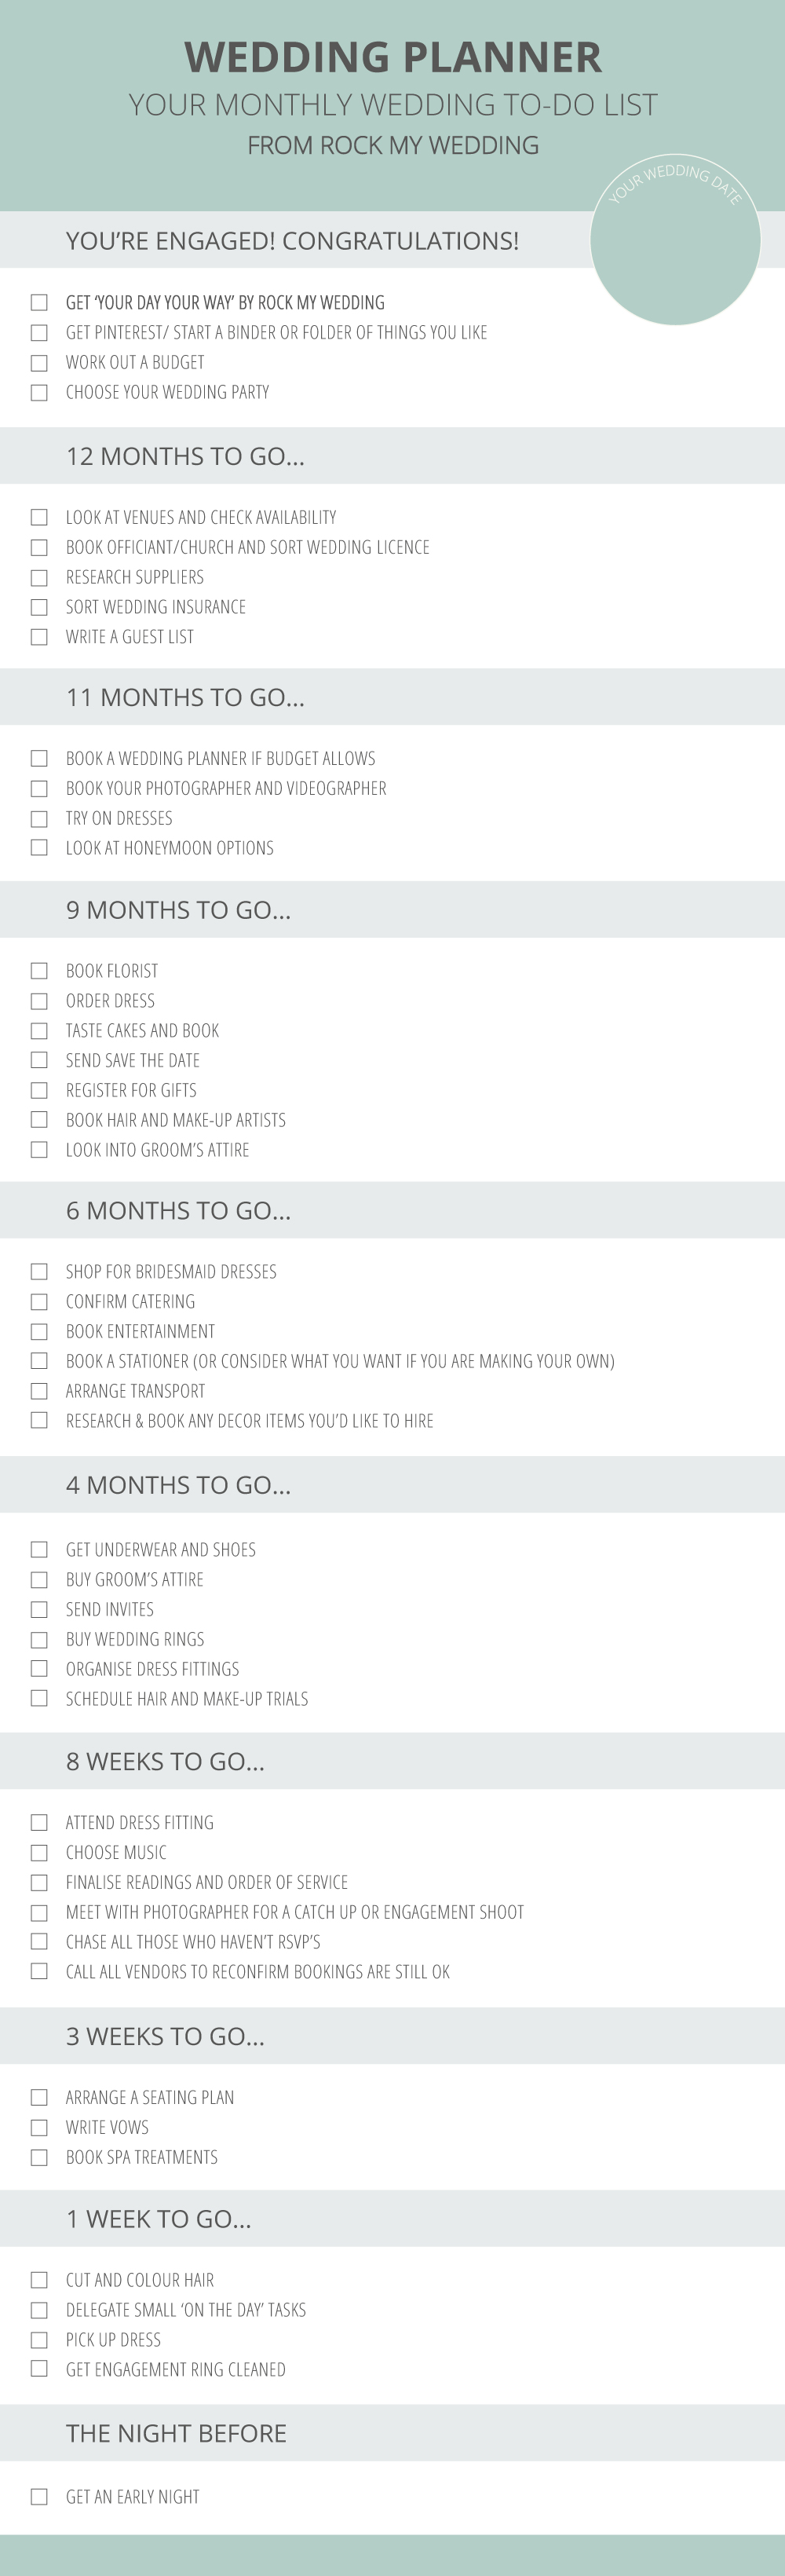 Month By Month Wedding Planning Checklist